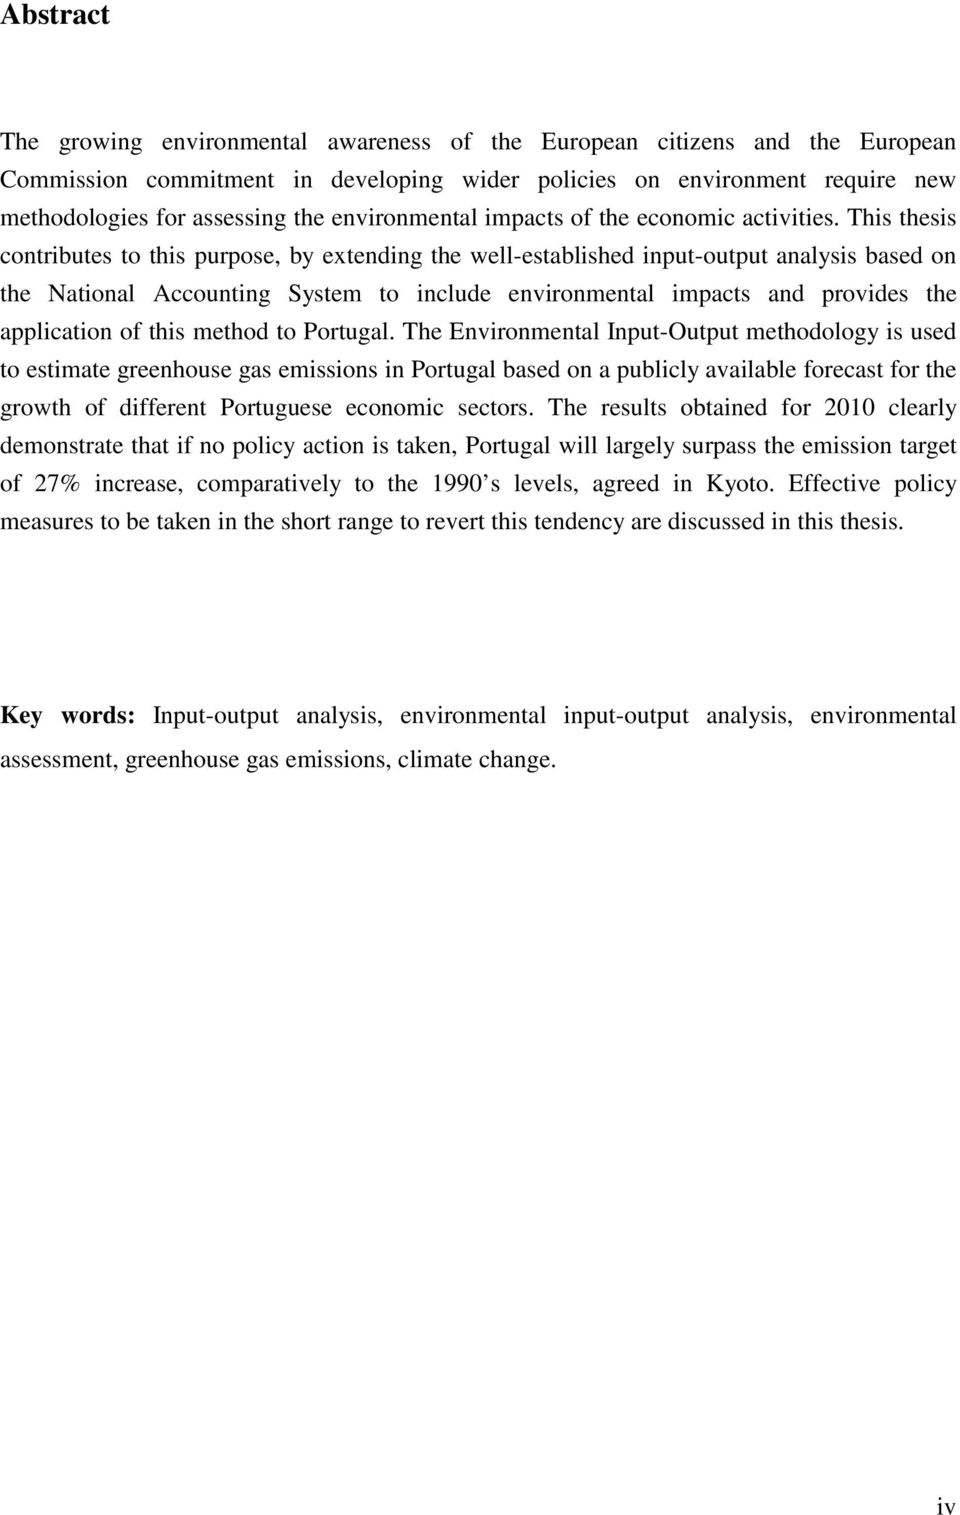 This thesis contributes to this purpose, by extending the well-established input-output analysis based on the National Accounting System to include environmental impacts and provides the application